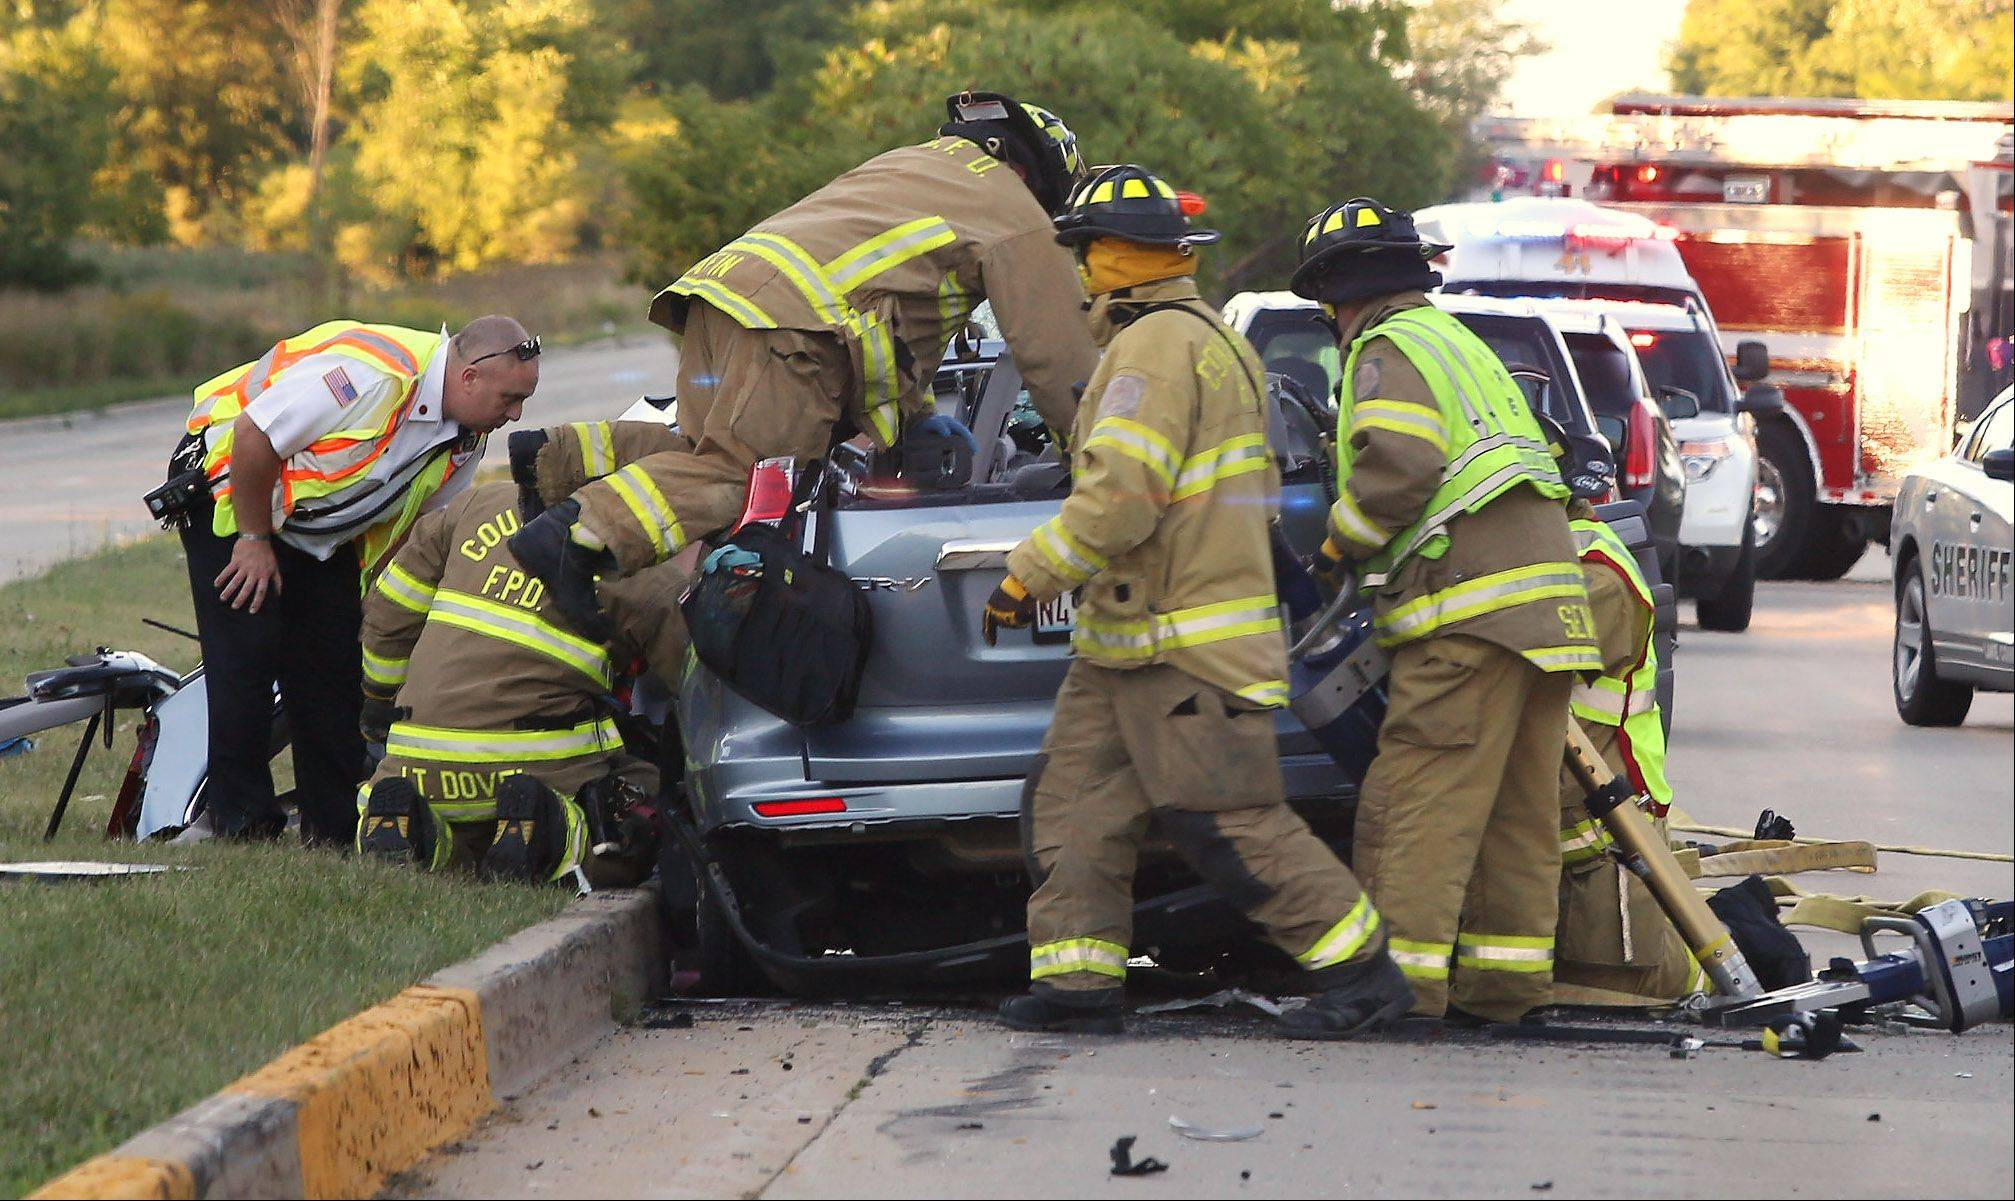 Countryside firefighters work to extricate a person from an SUV after a multivehicle accident Thursday on northbound Route 83 at Westmoreland Road near Long Grove.